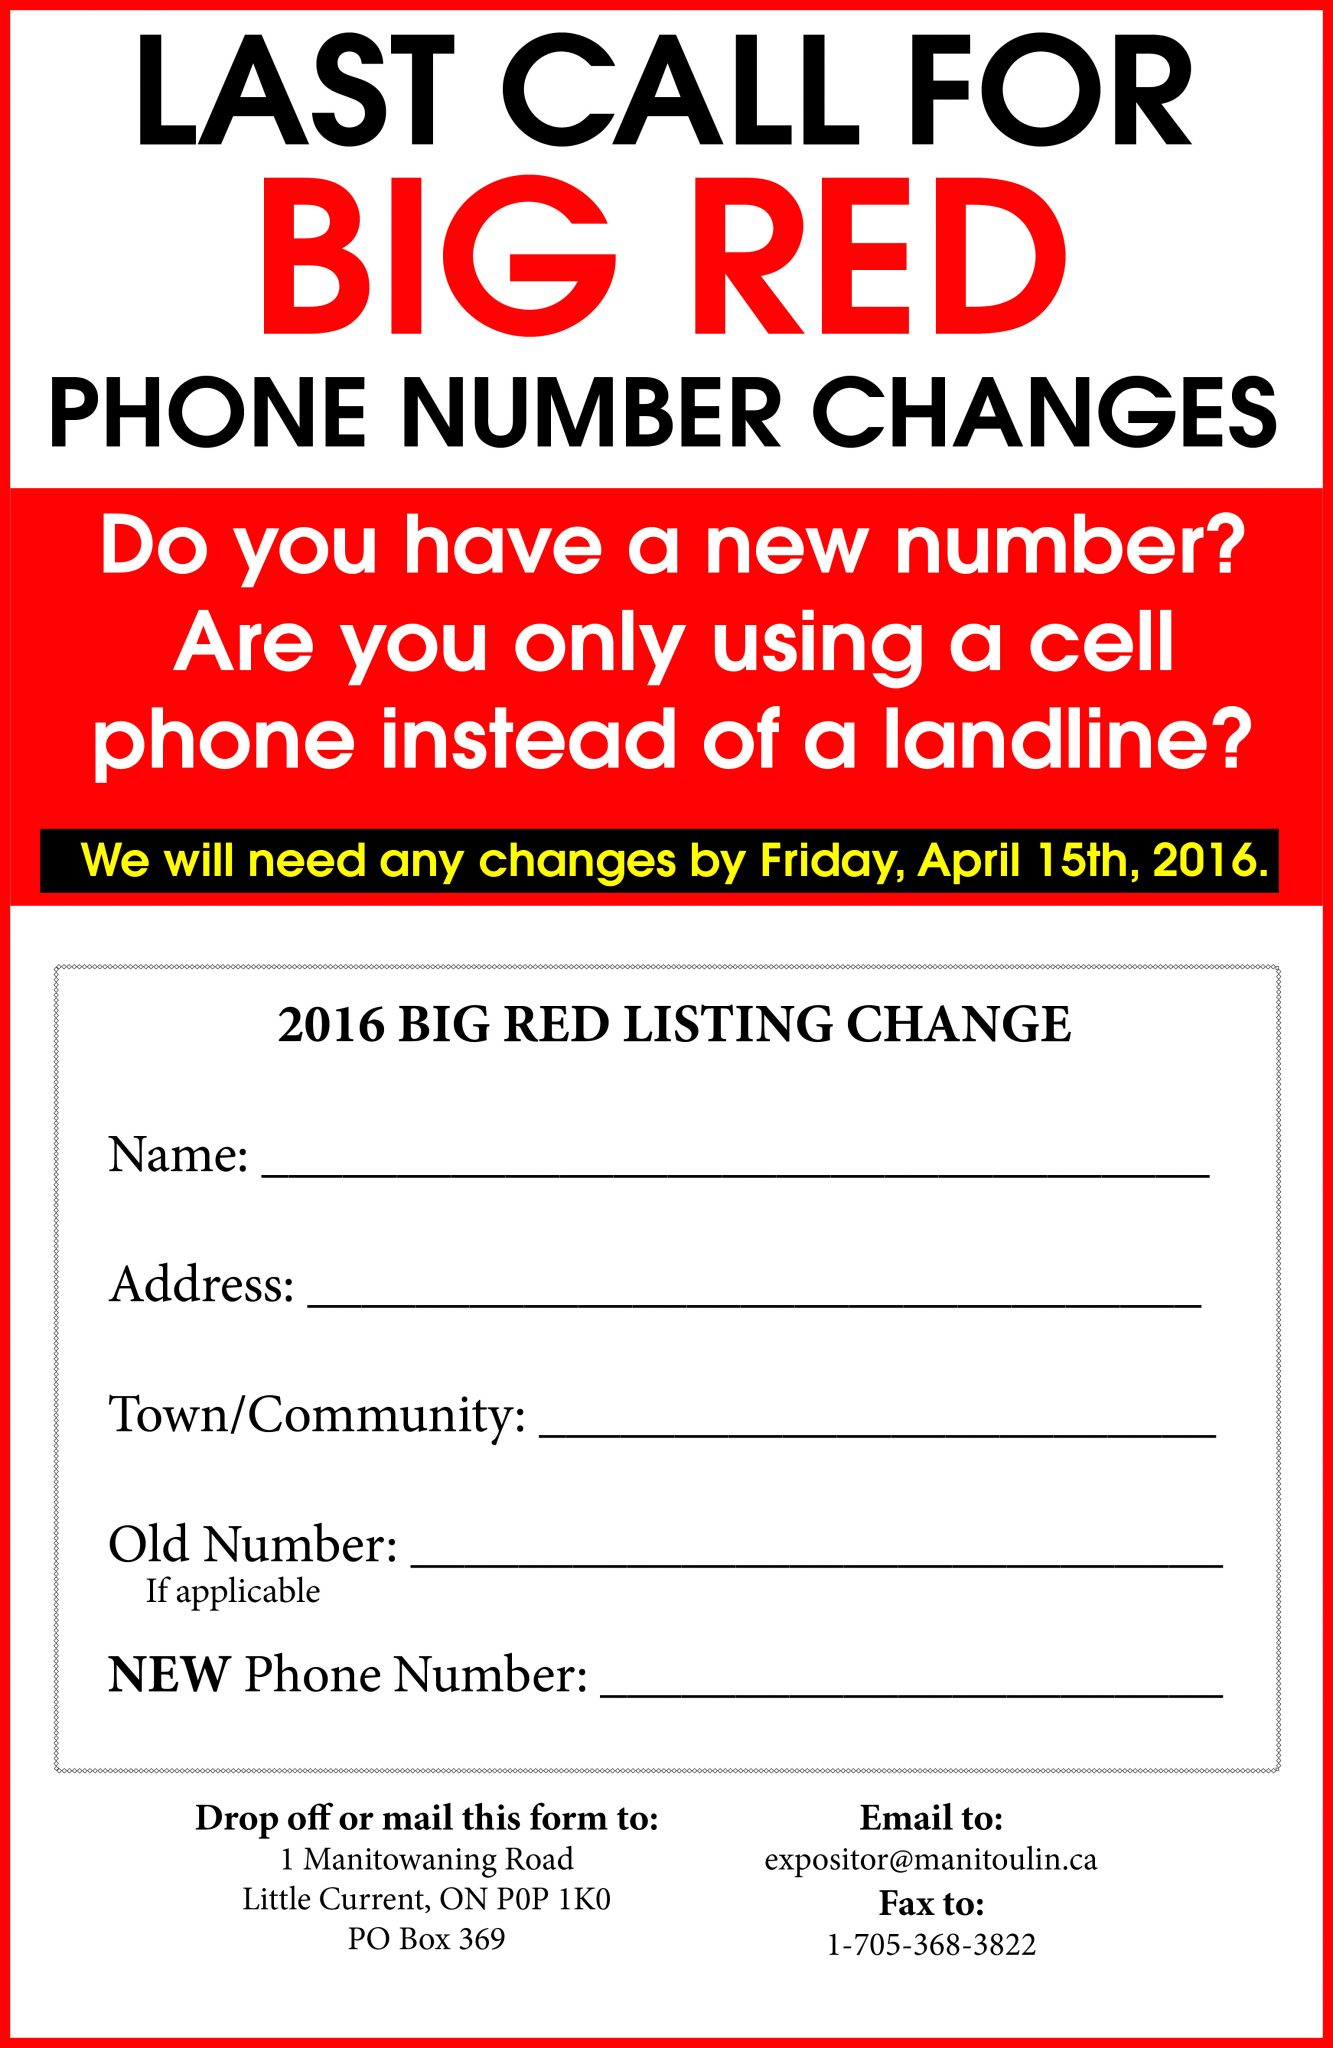 Is there a way to request new phone listings?